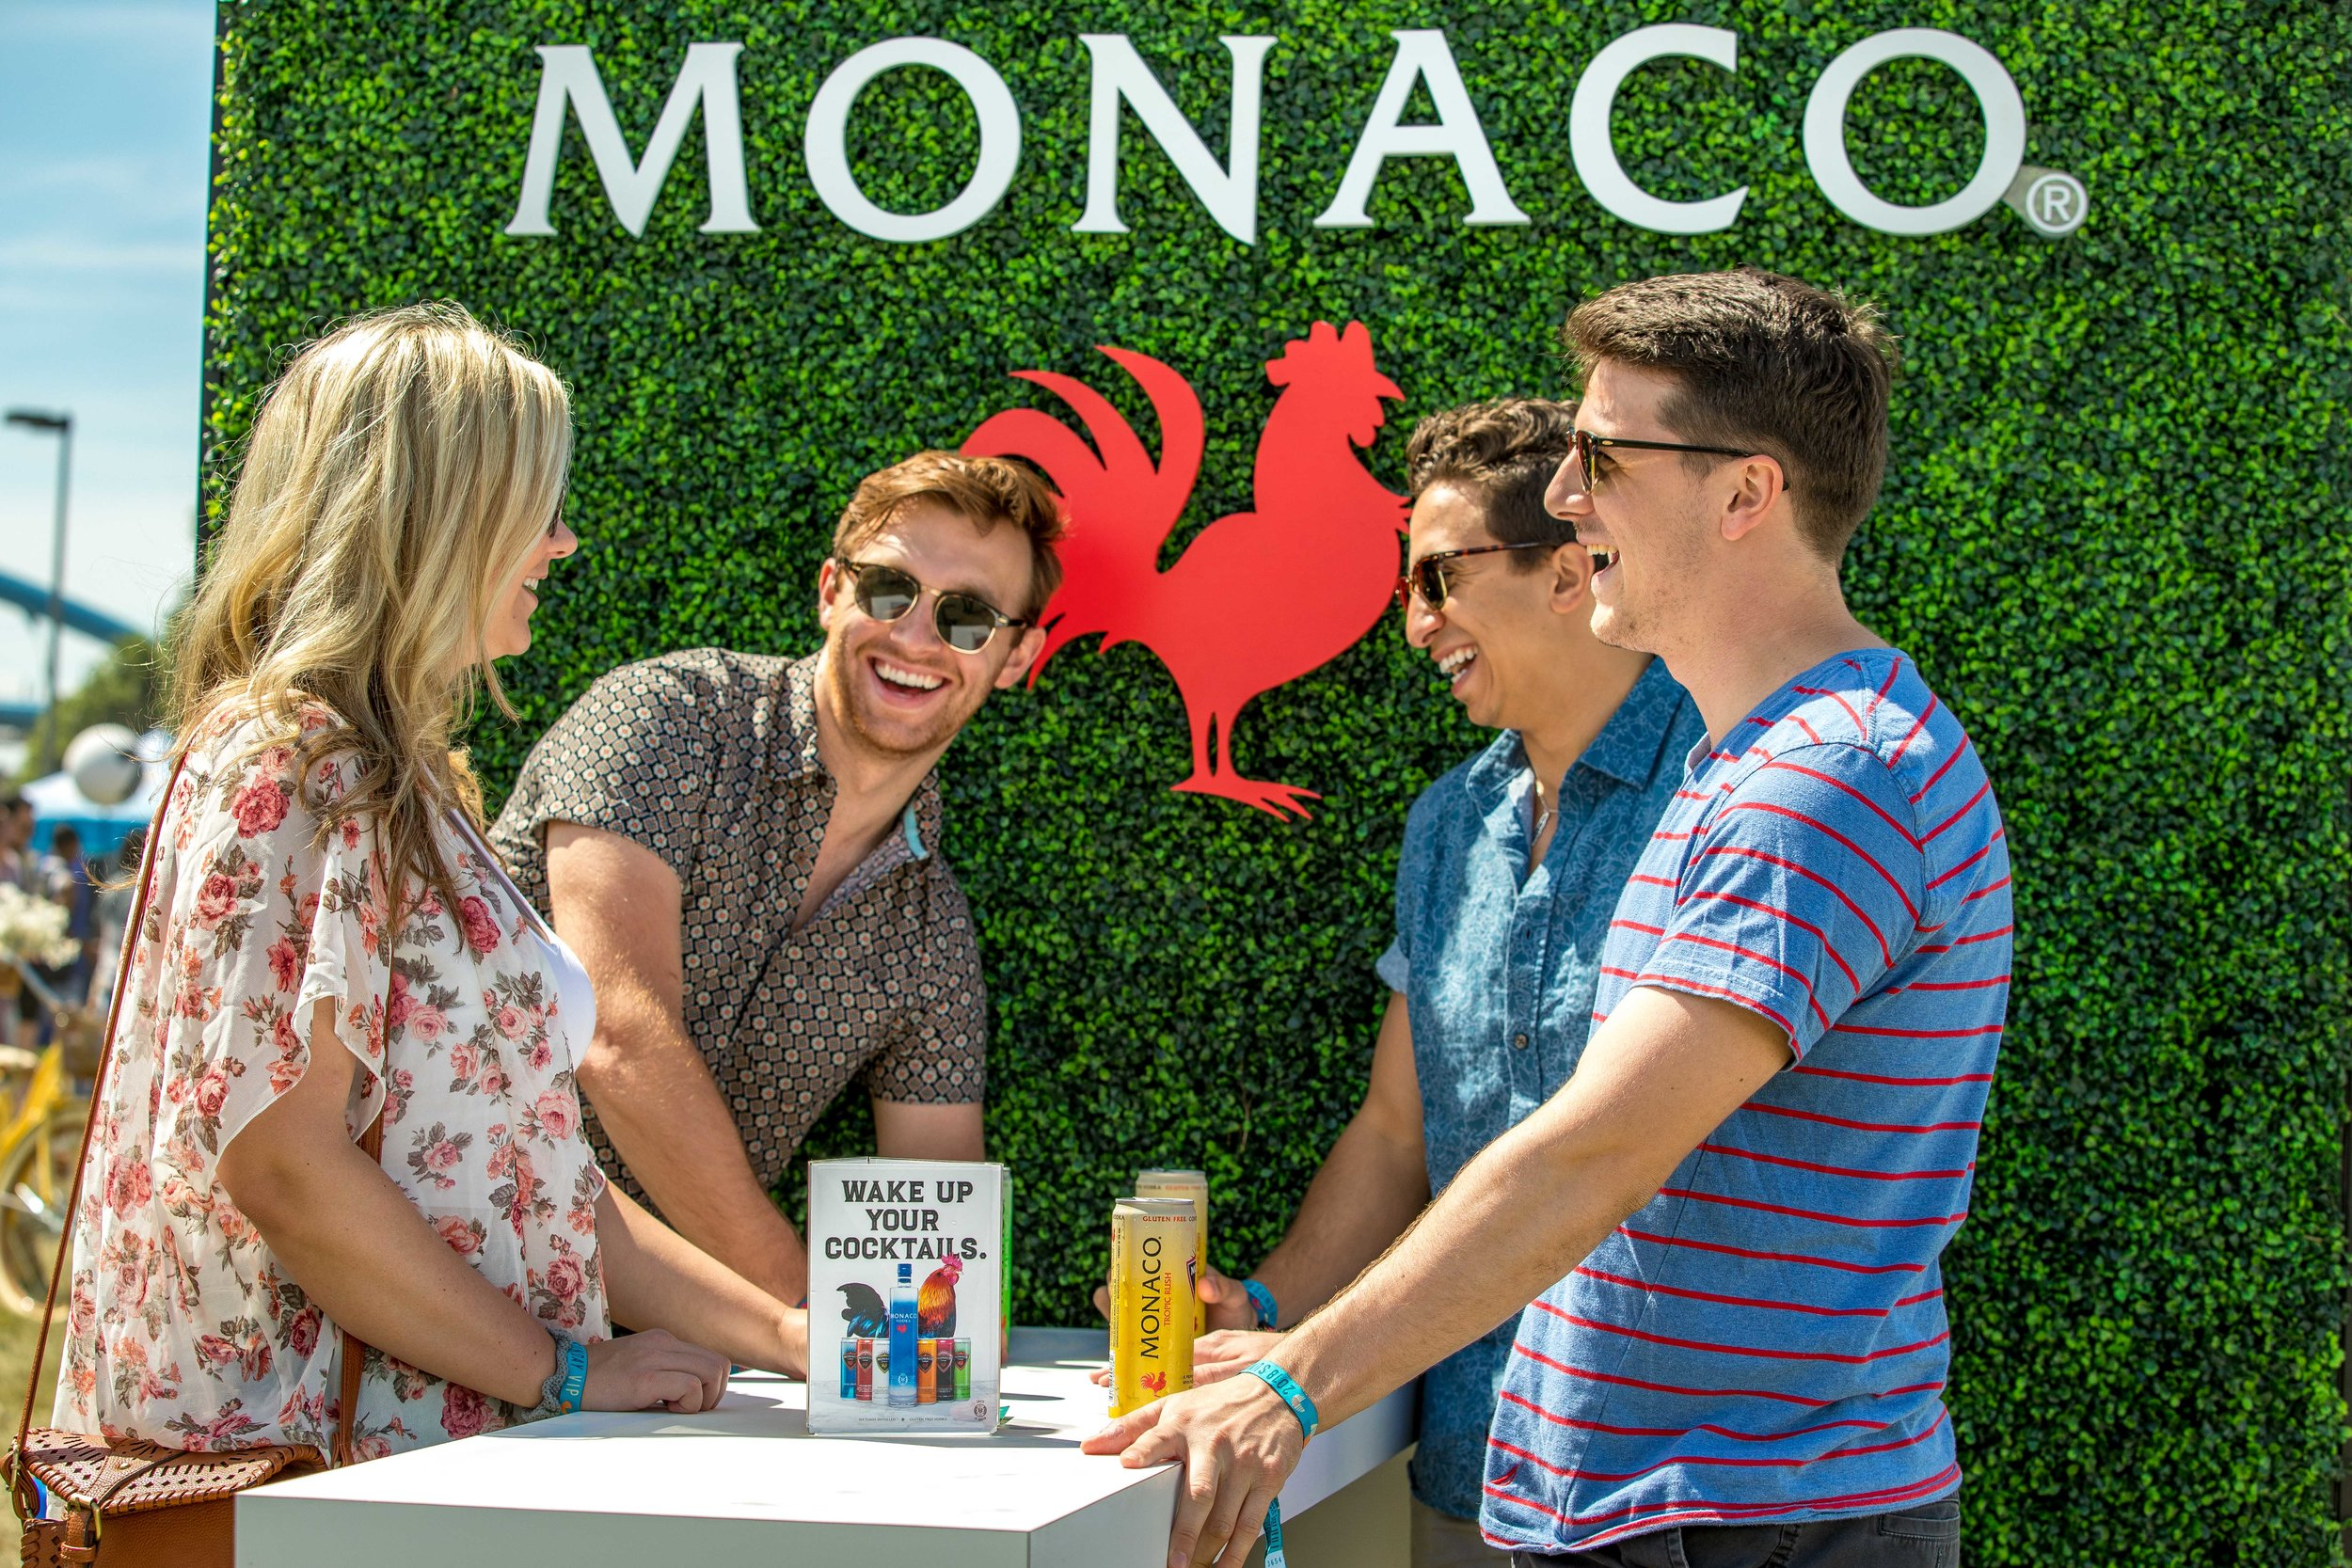 Monaco Activation Friends.jpg